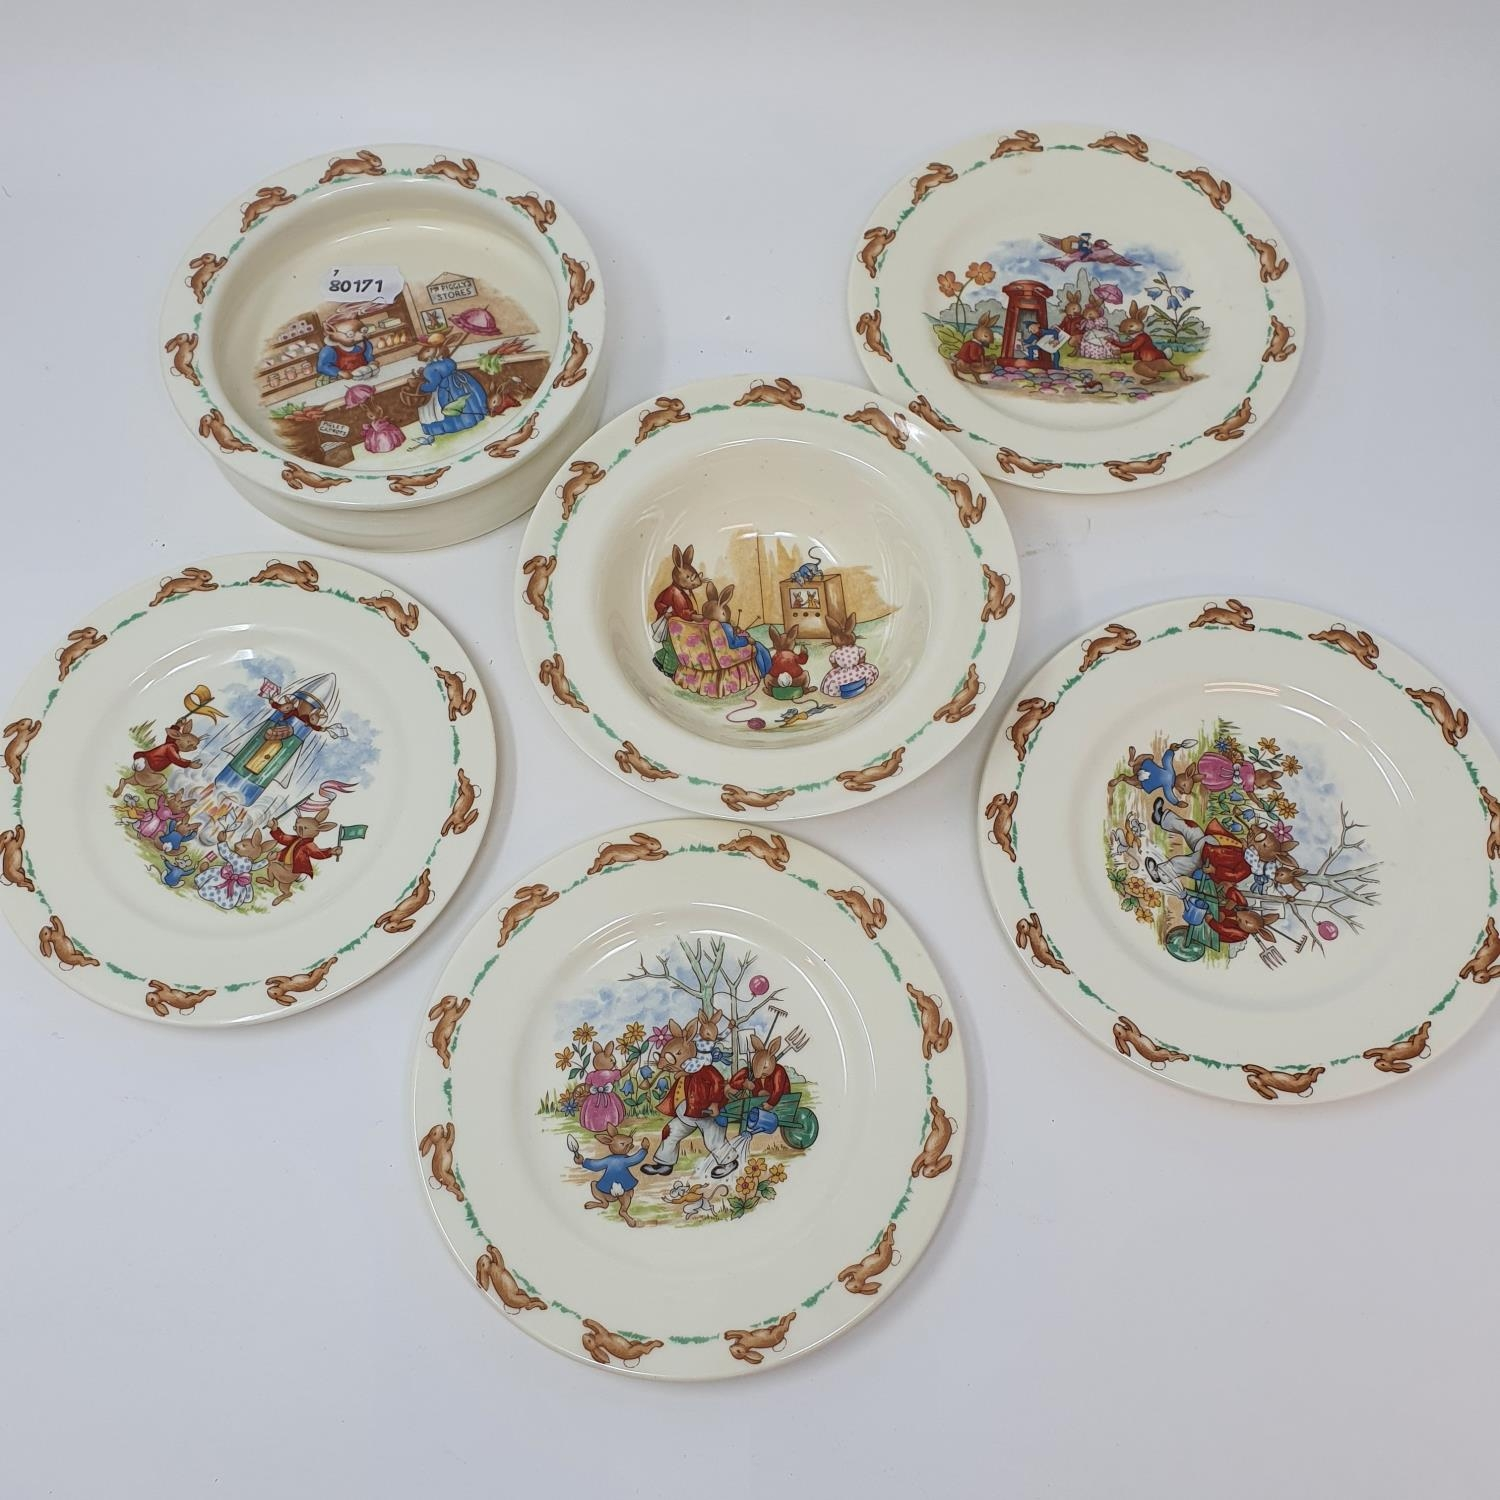 Two Royal Doulton Bunnykins baby's plates by Barbara Vernon, and other Bunnykins china (8) - Image 4 of 4